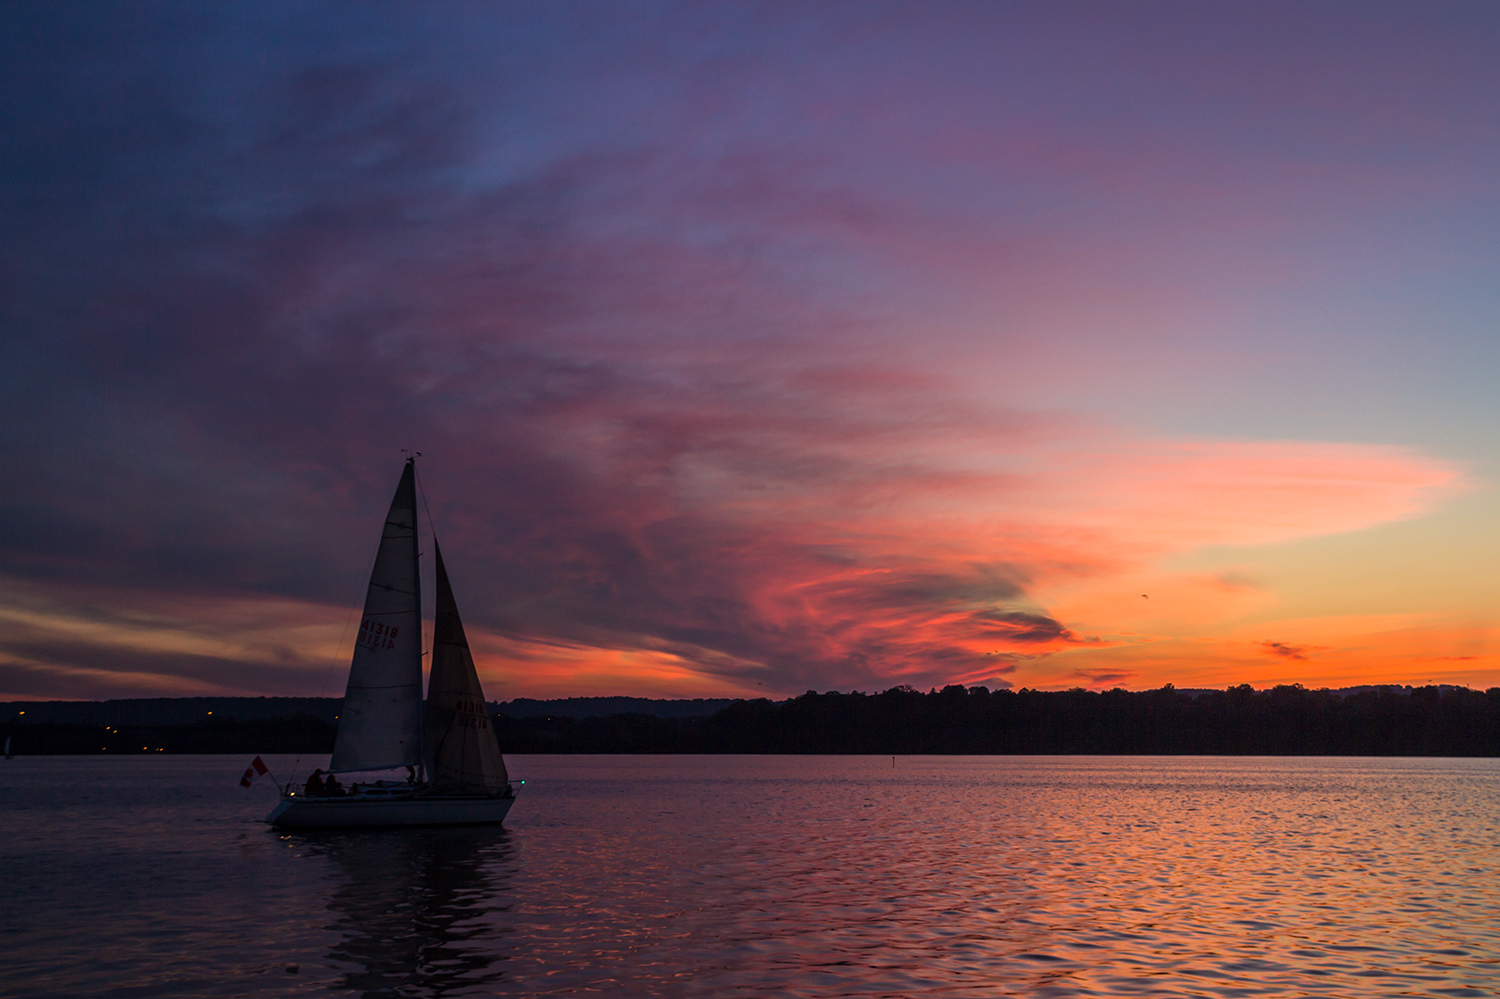 Photo of sail boat on water with sunset in background